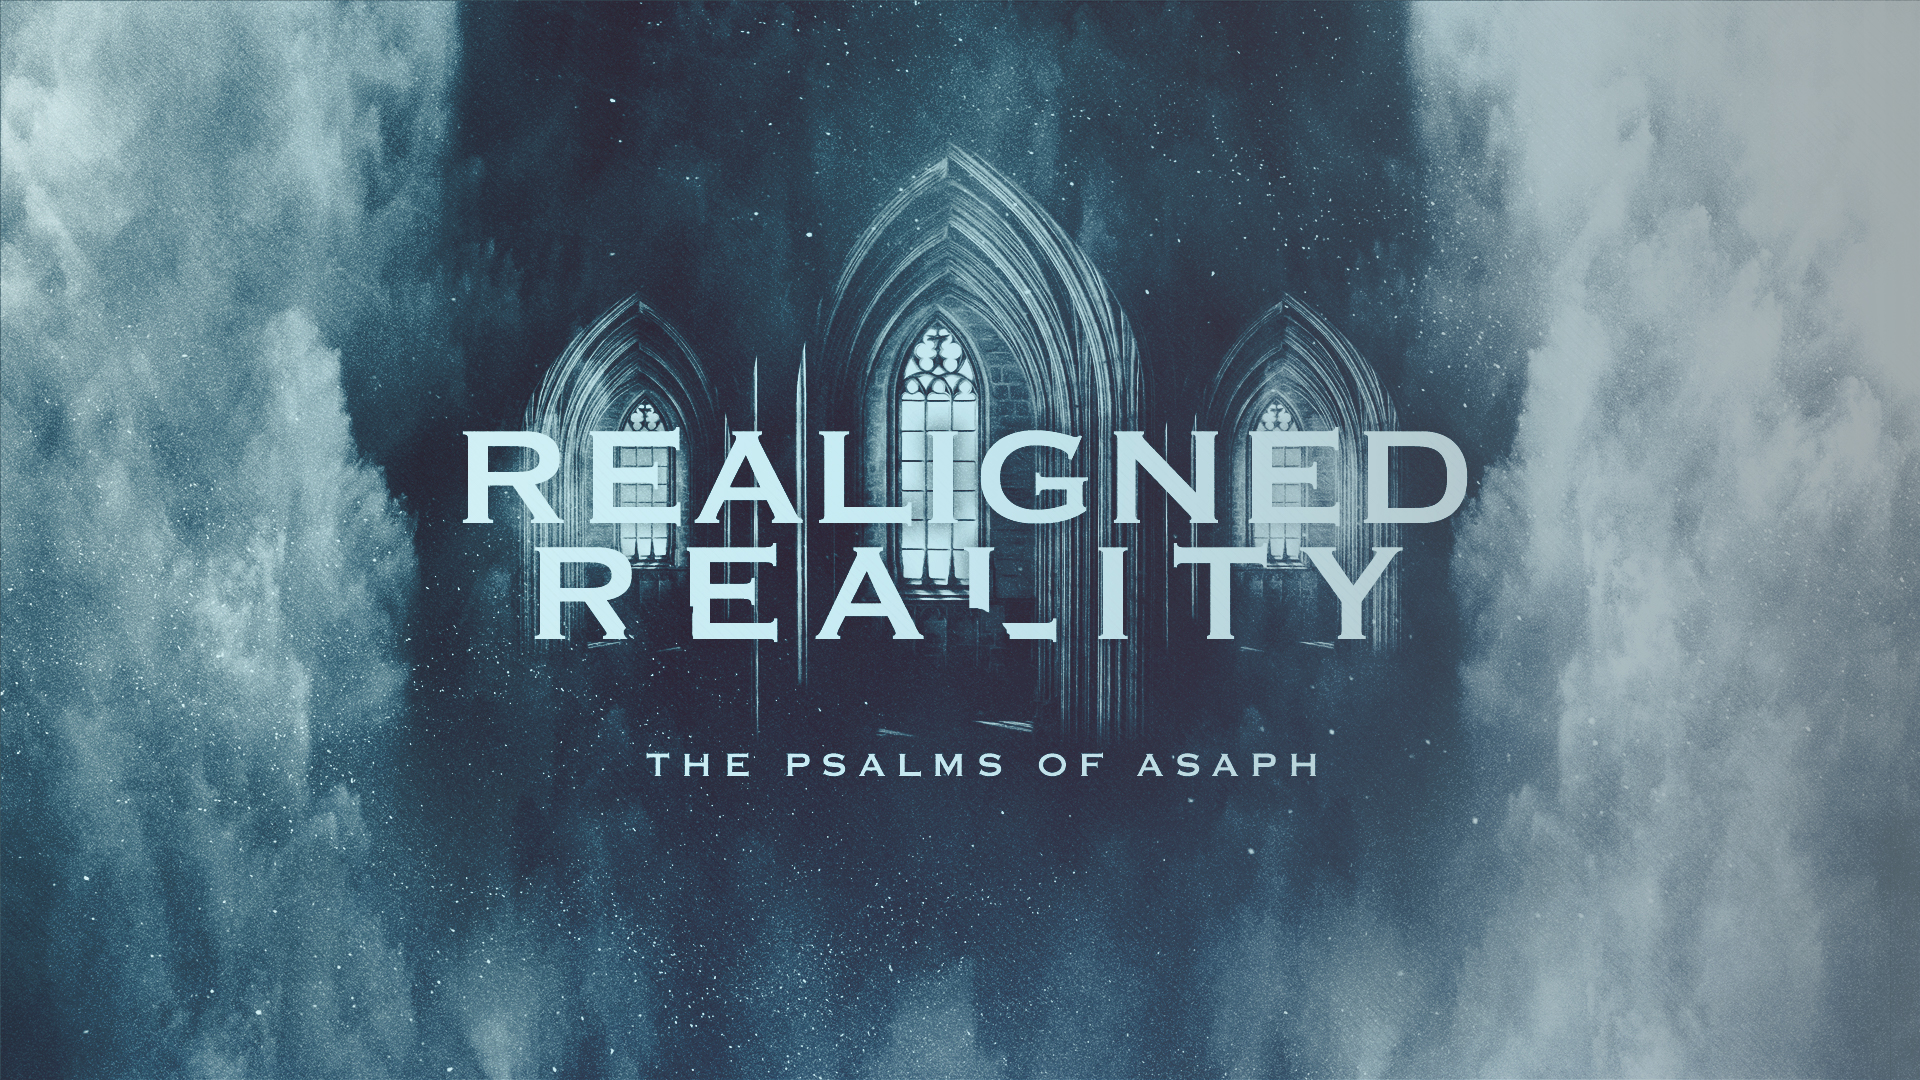 Realigned Reality: The Psalms of Asaph